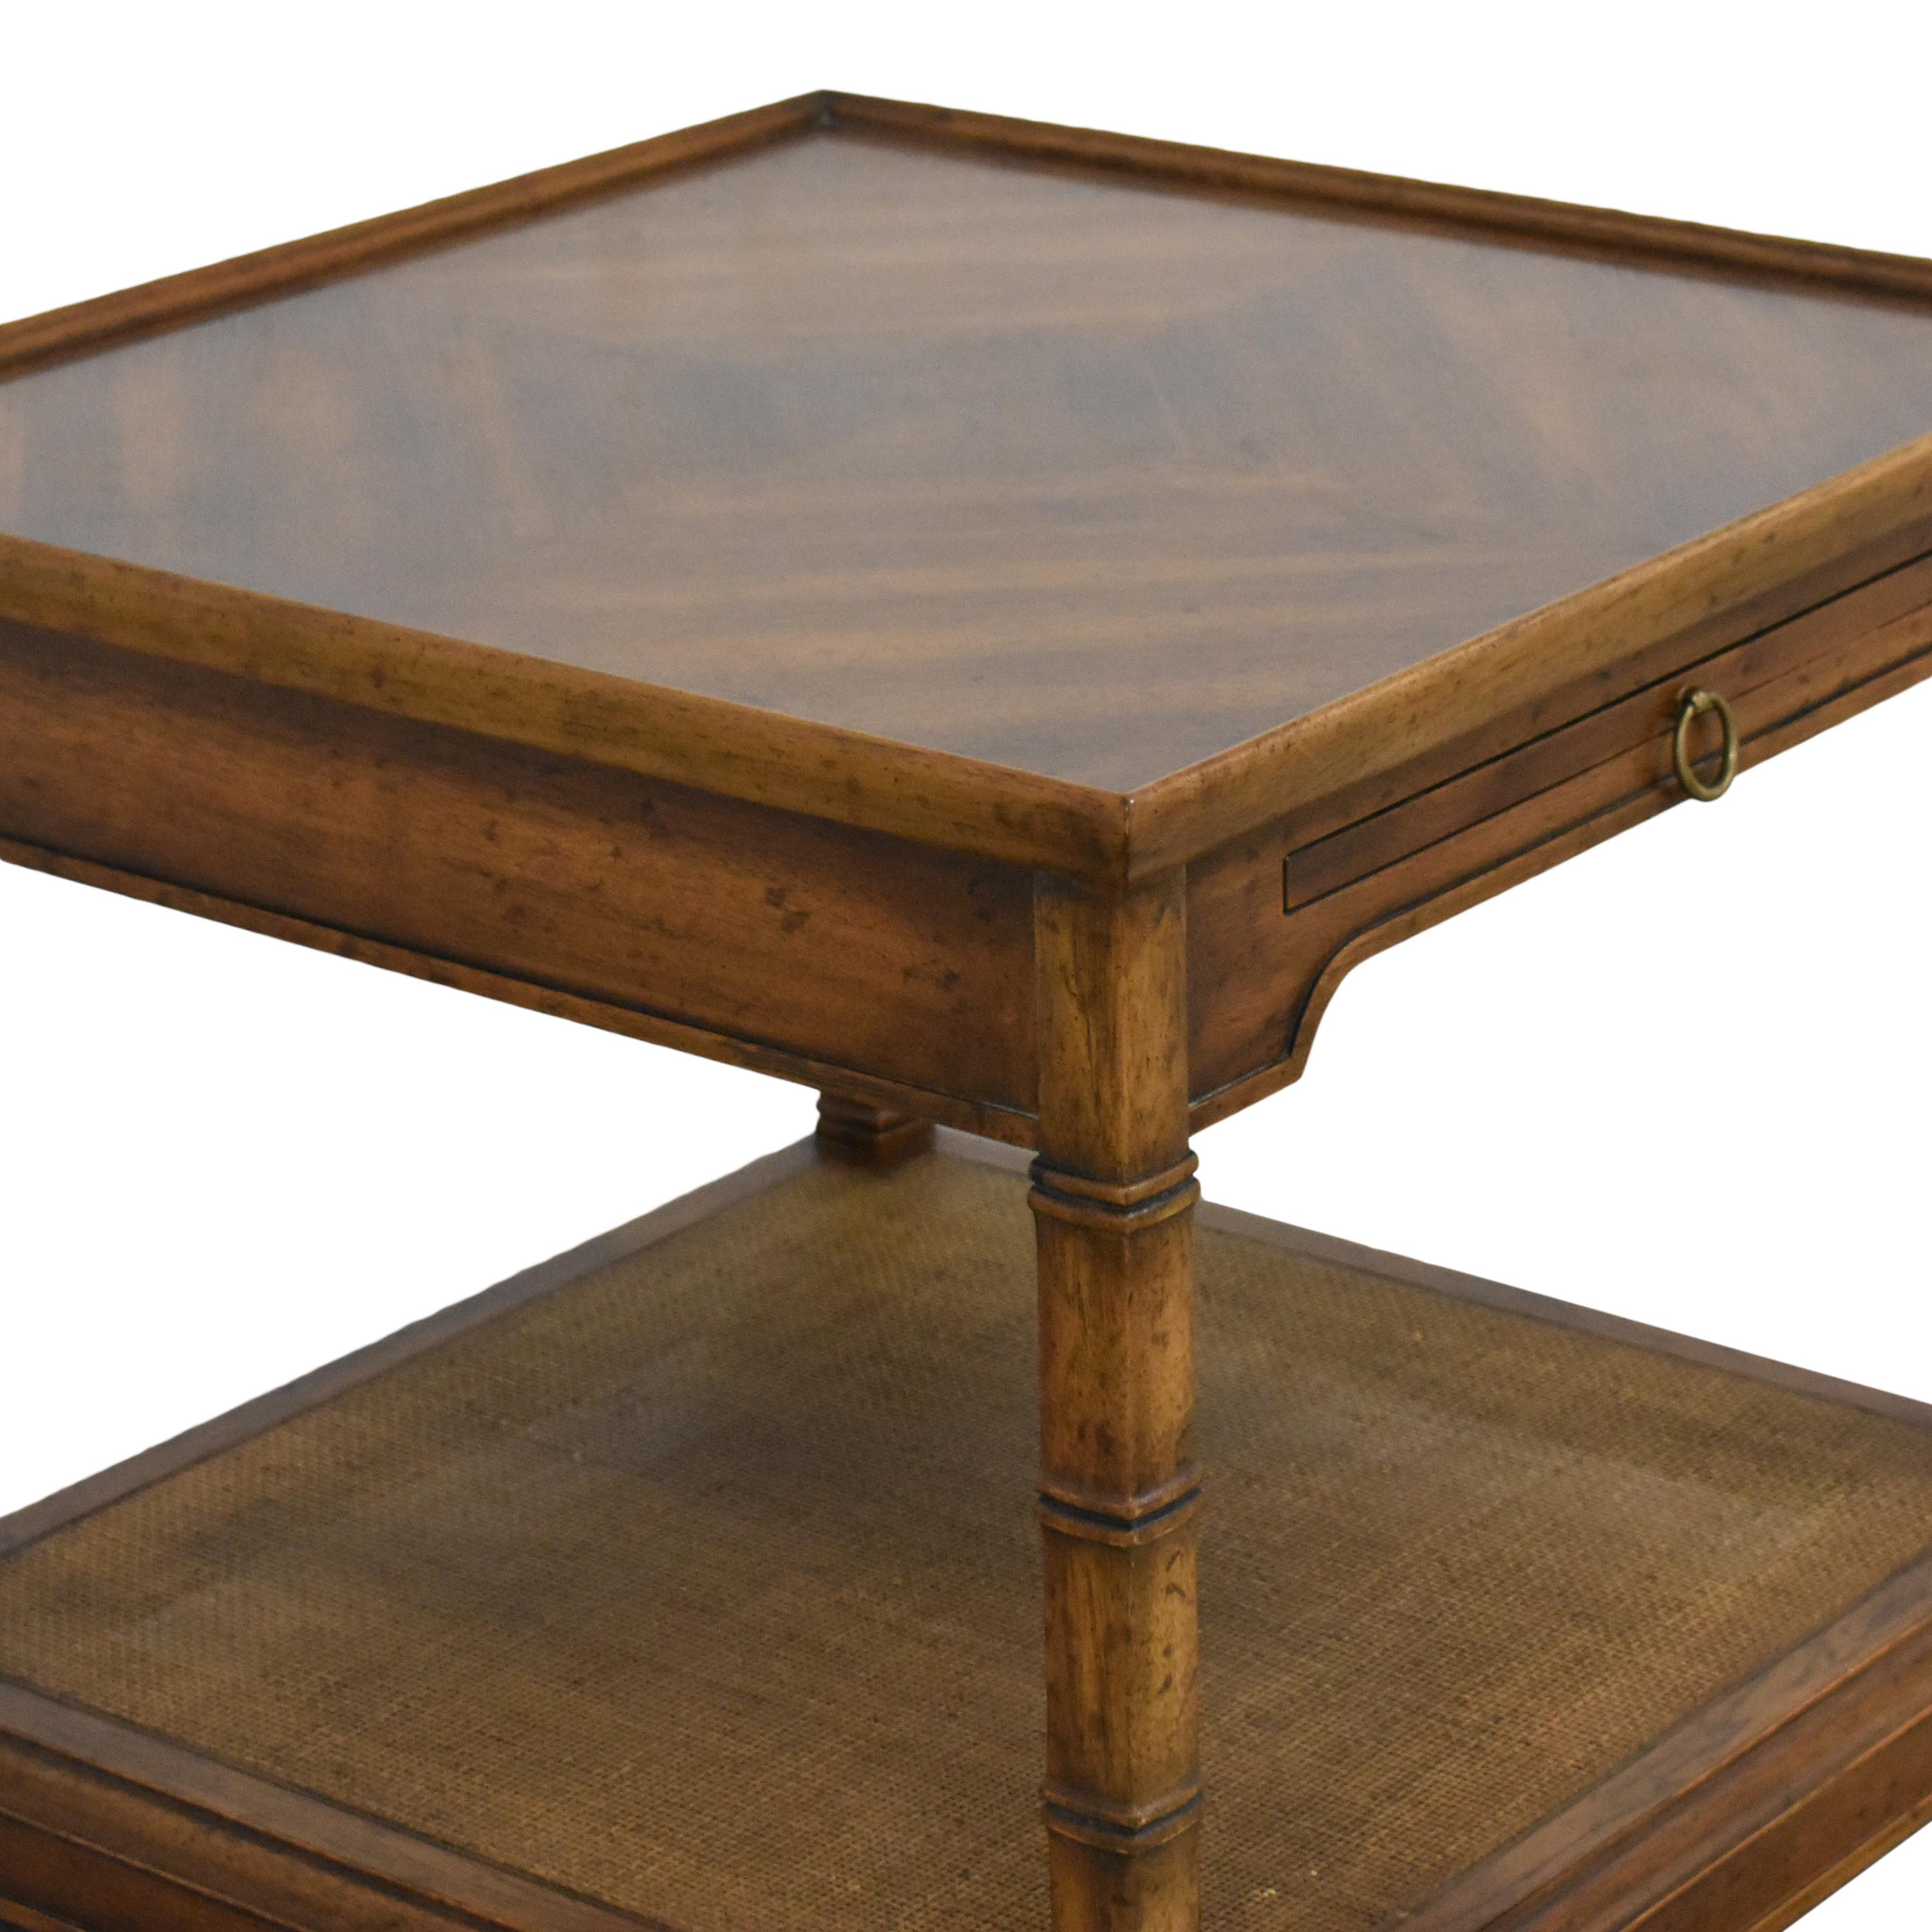 Heritage Heritage End Table with Desk Extension dimensions